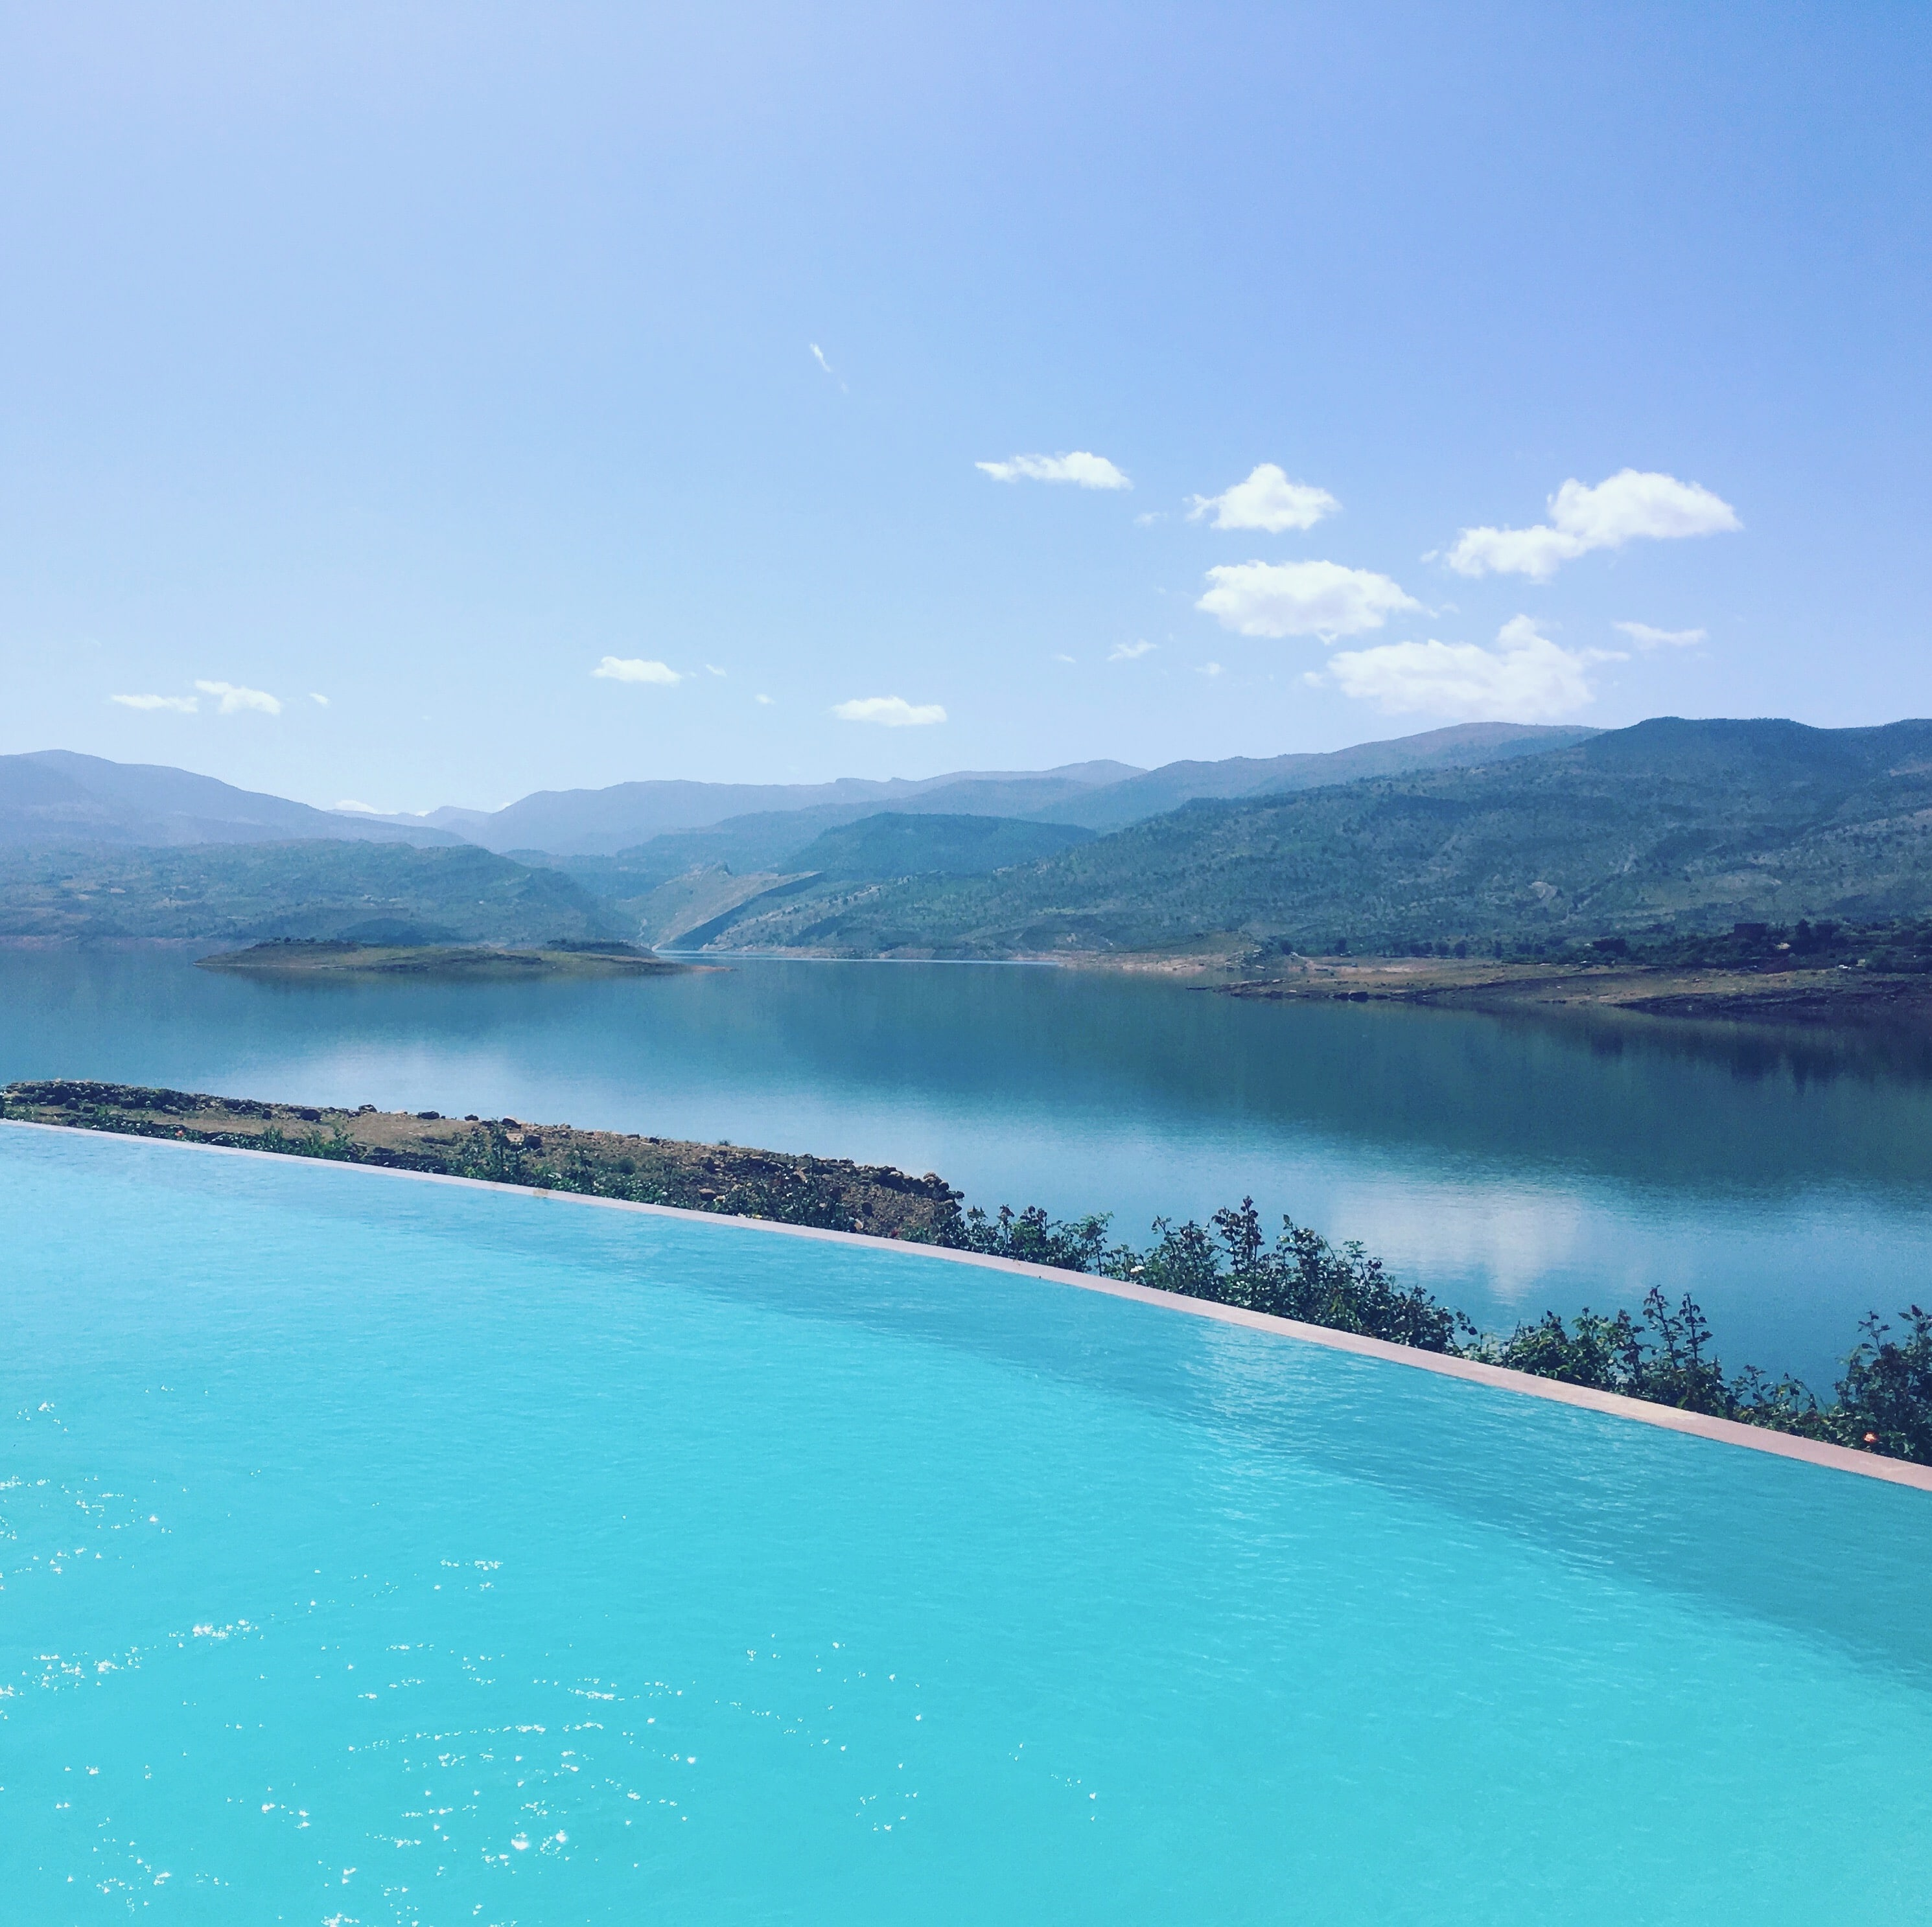 The spectacular infinity pool at Widiane Hotel and Spa